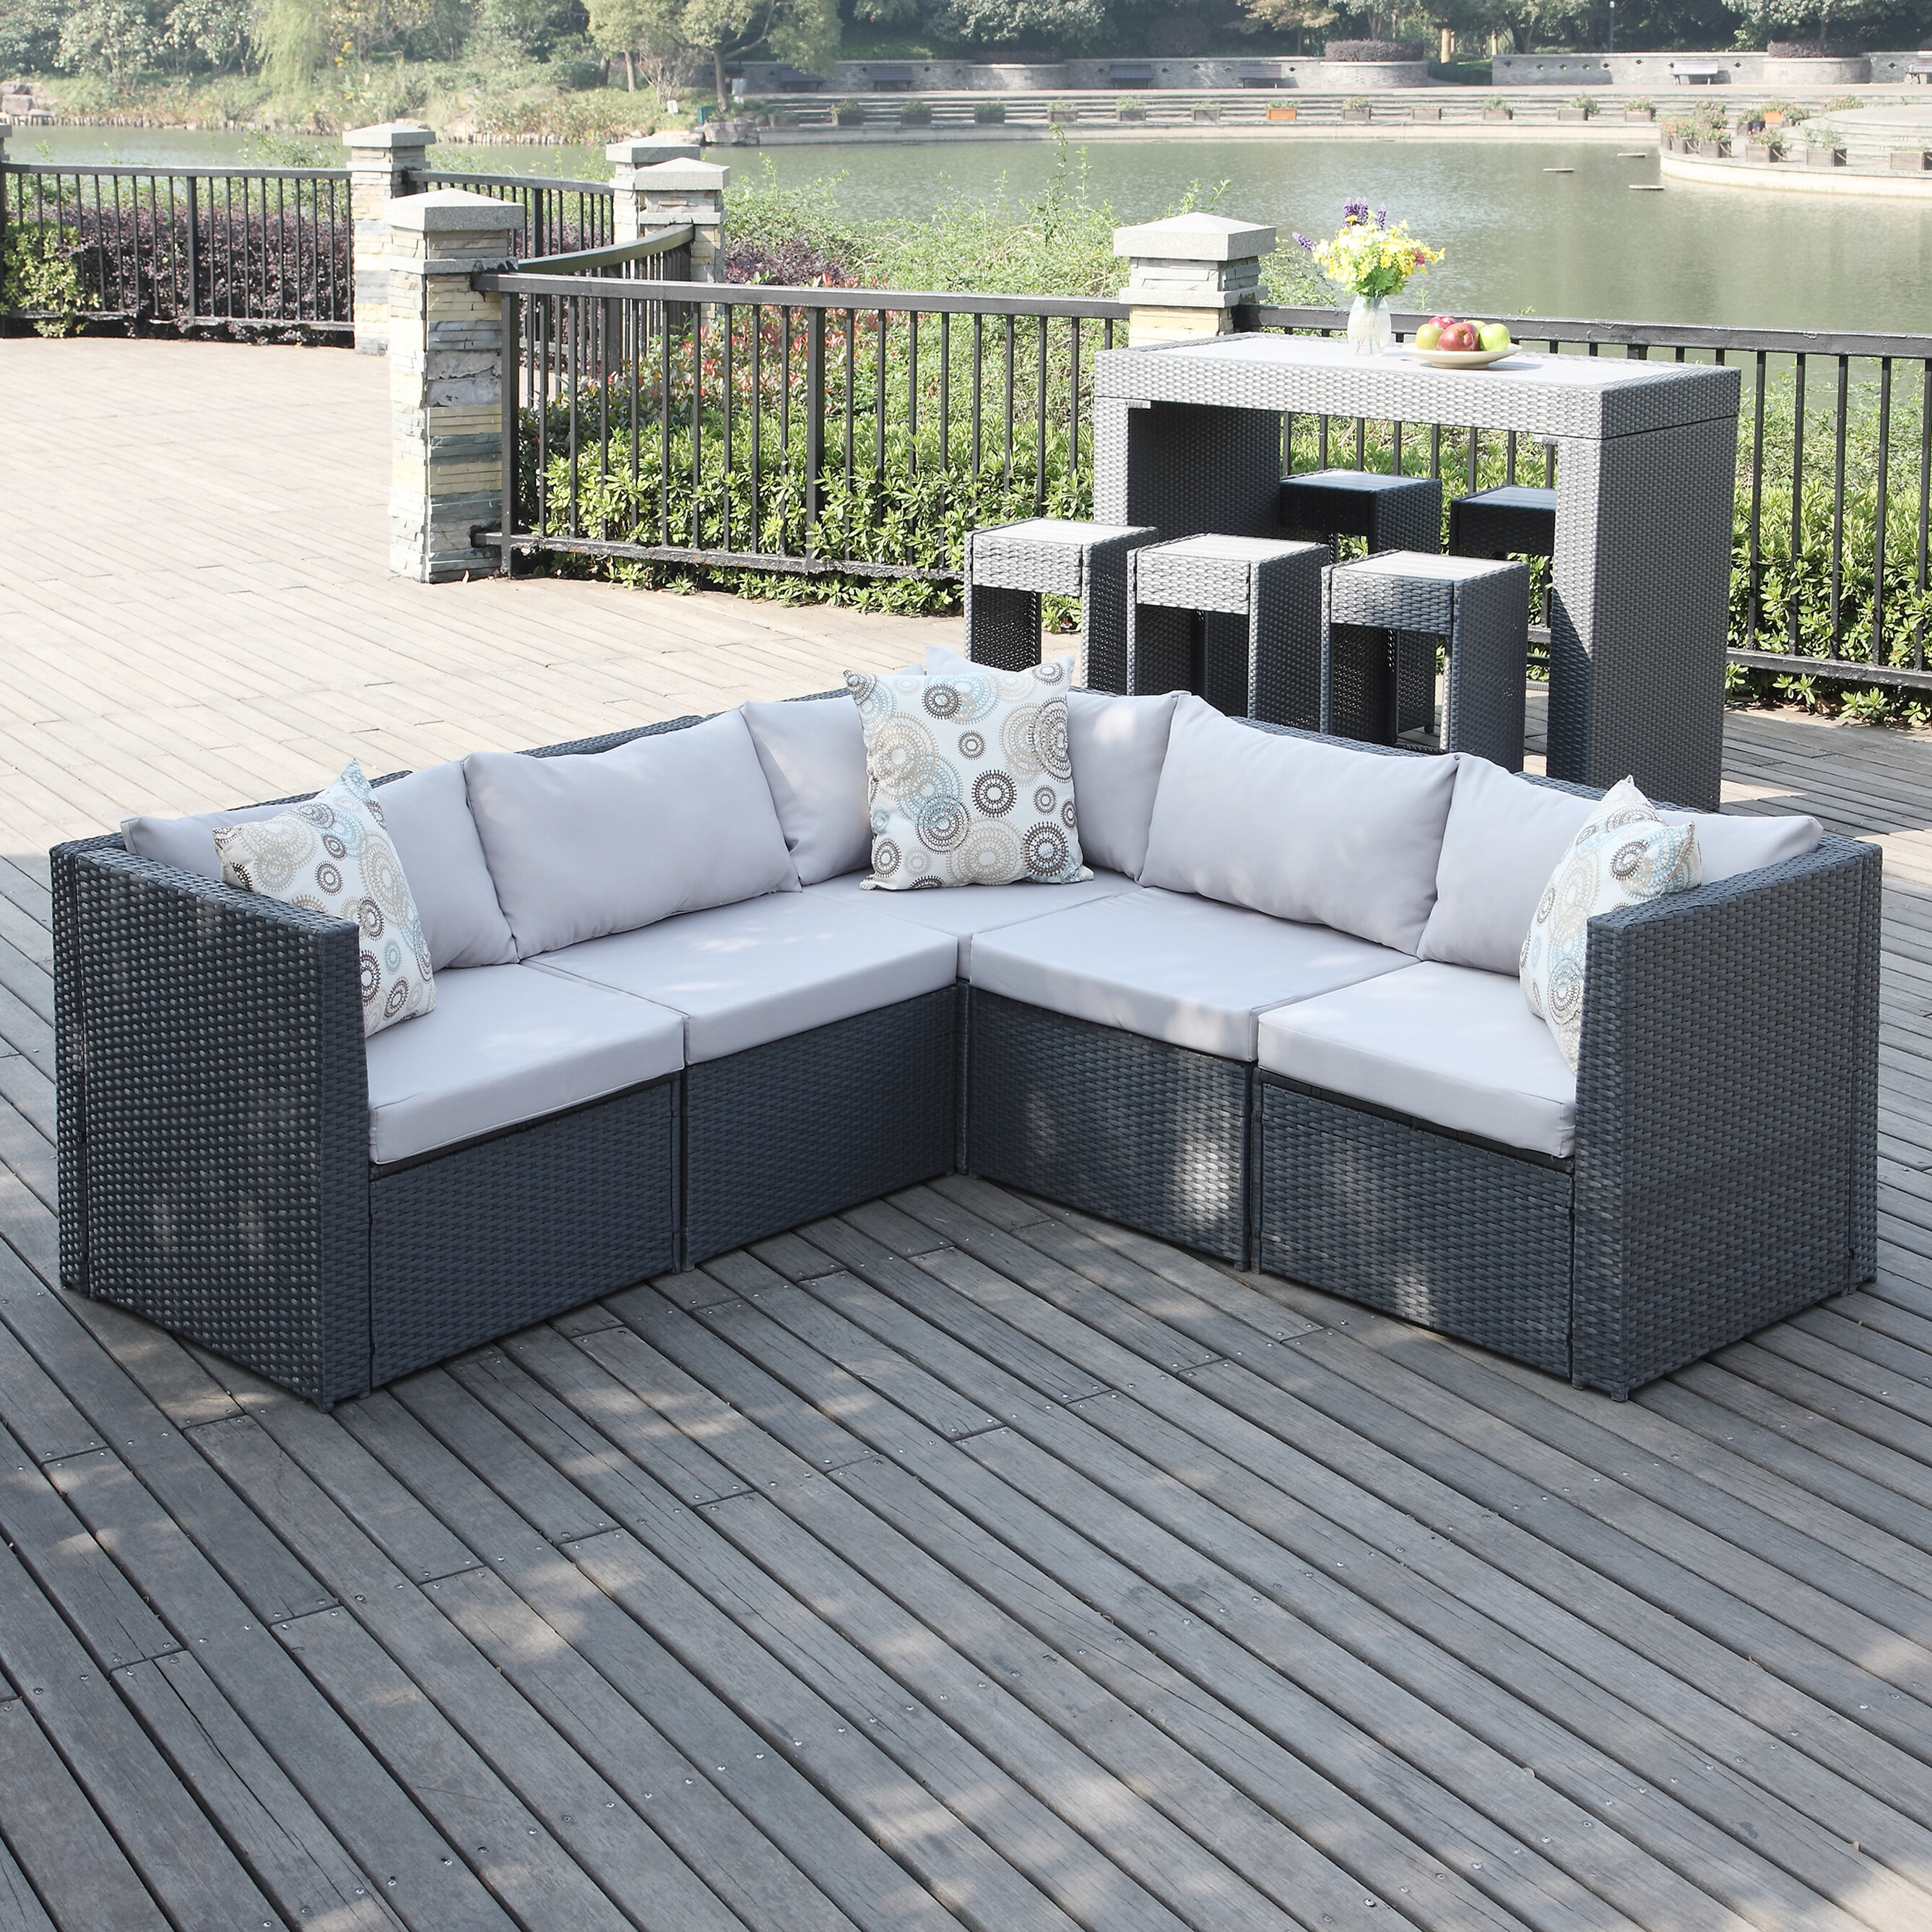 Larsen Patio Sectionals With Cushions Throughout 2019 Larsen Patio Sectional With Cushions (View 13 of 20)